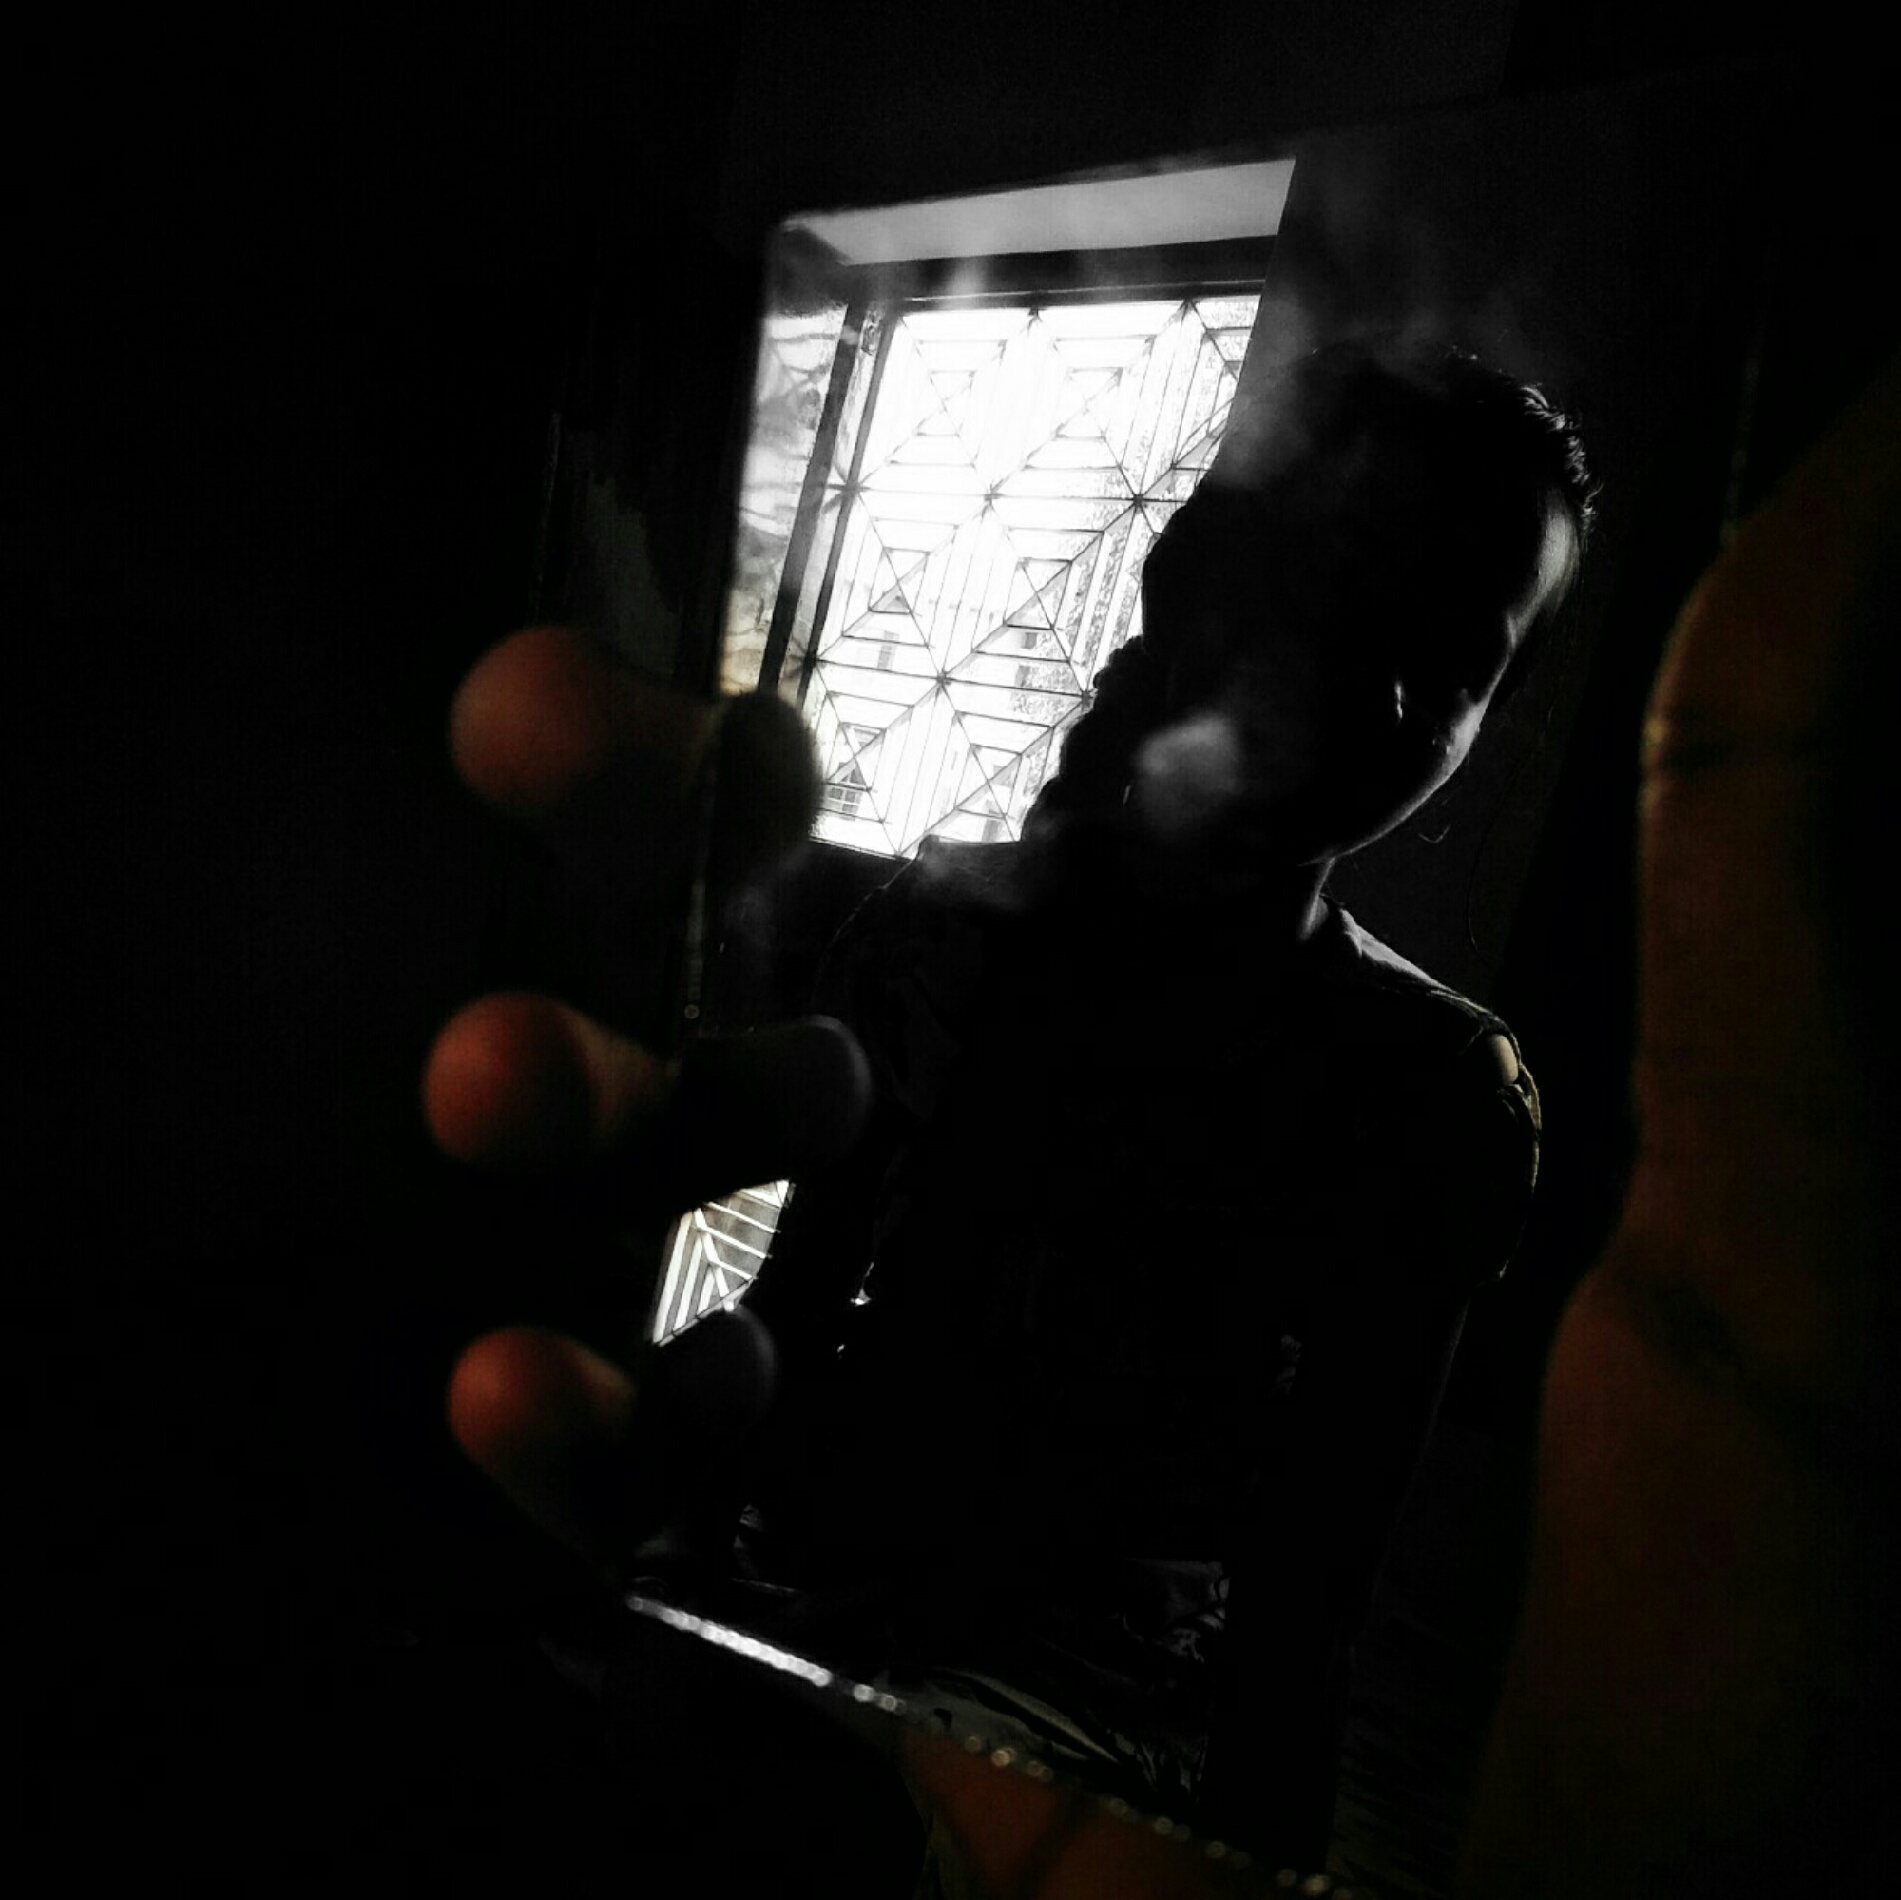 This picture depicts on the other side of the mirror In this picture a girl is looking at mirror in a dark life to Mela this picture is taken iow light.